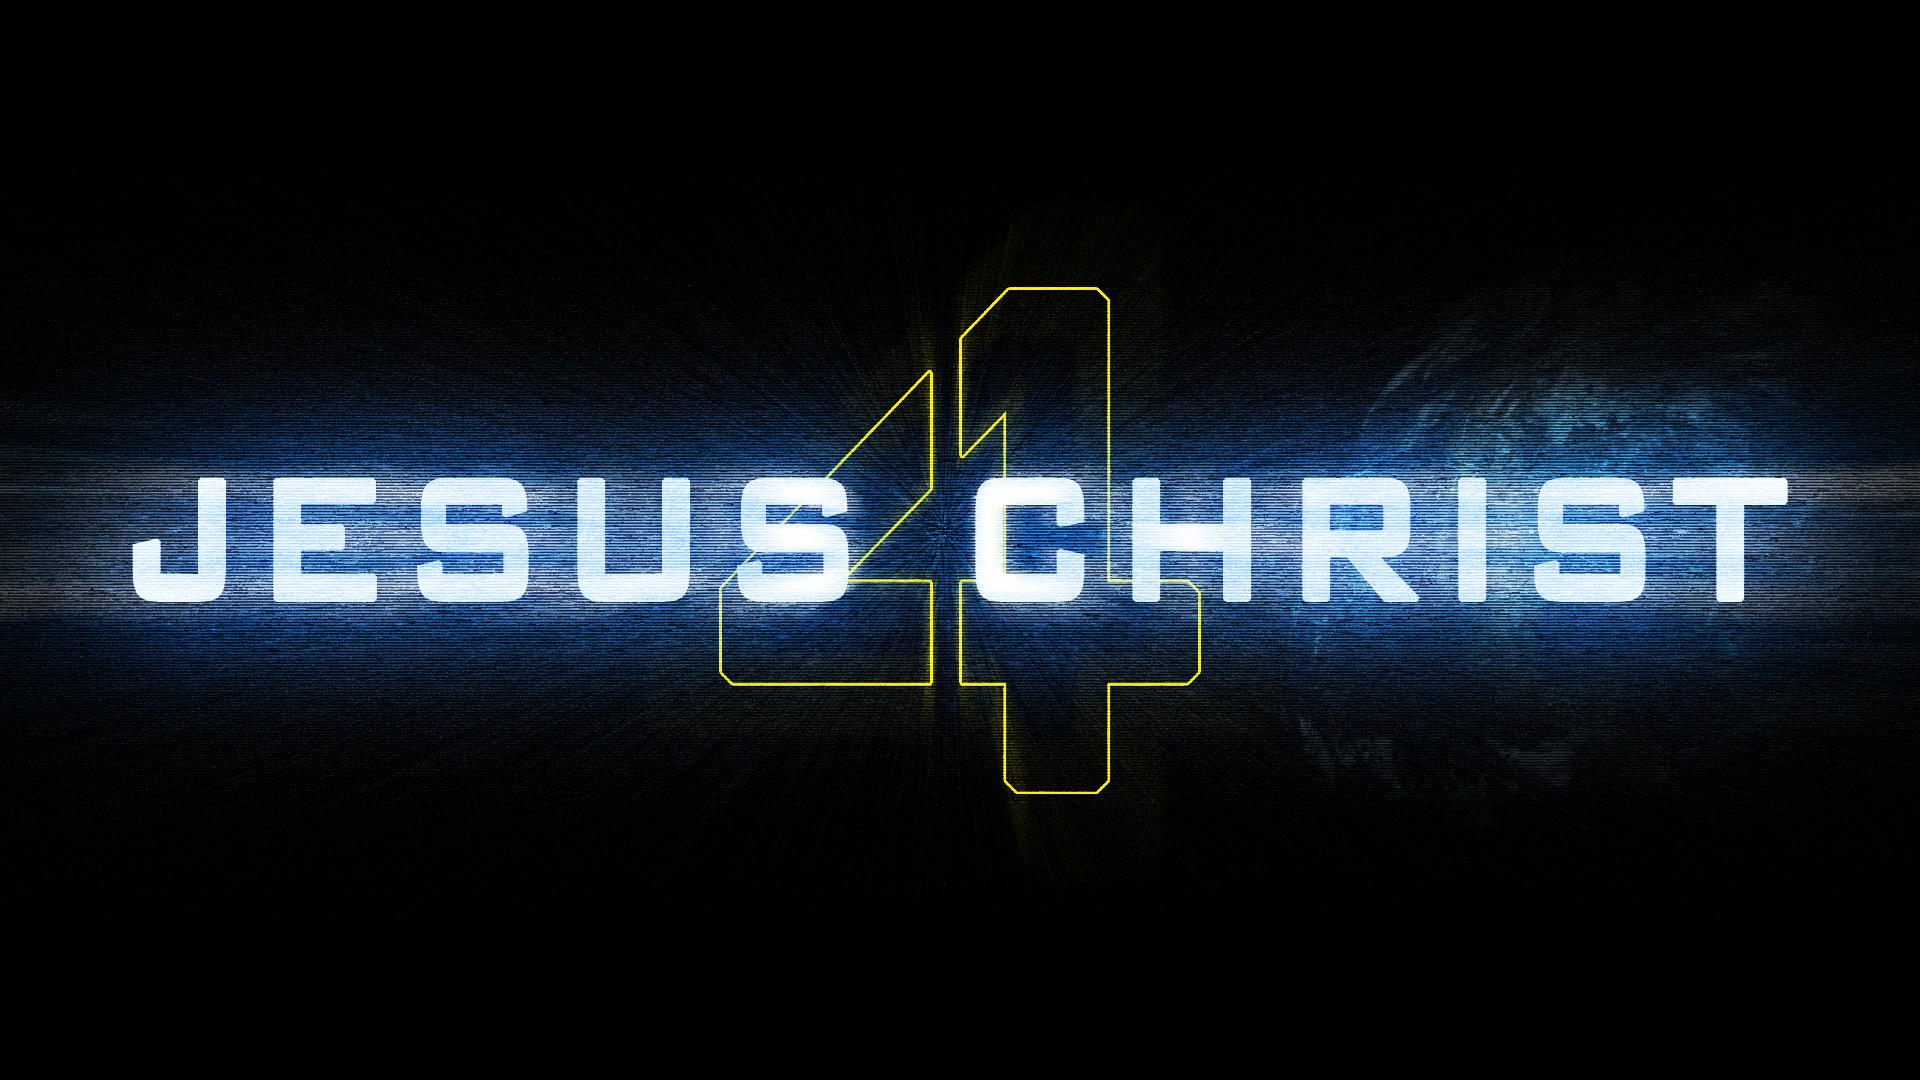 jesus christ wallpaper